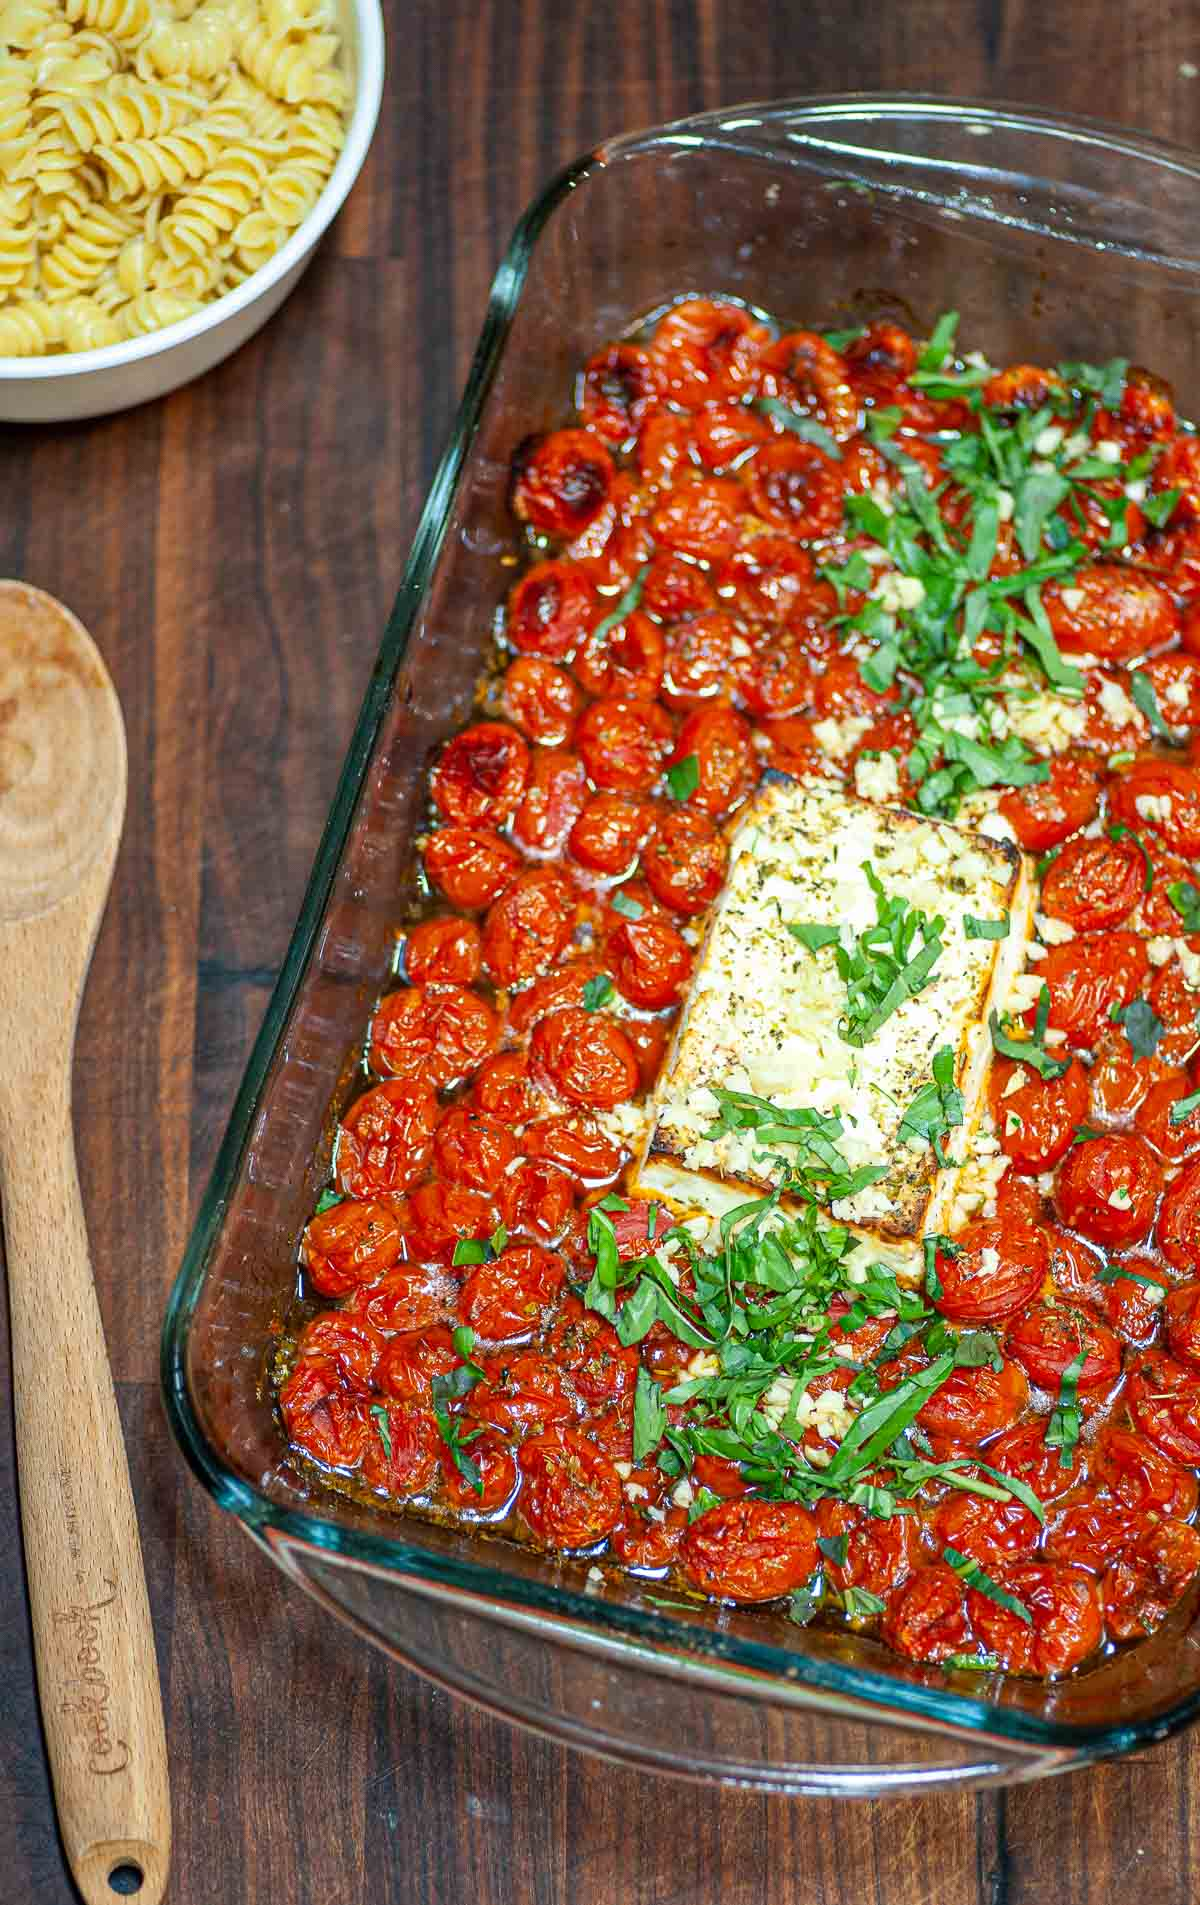 Baked feta and tomatoes right from the oven.